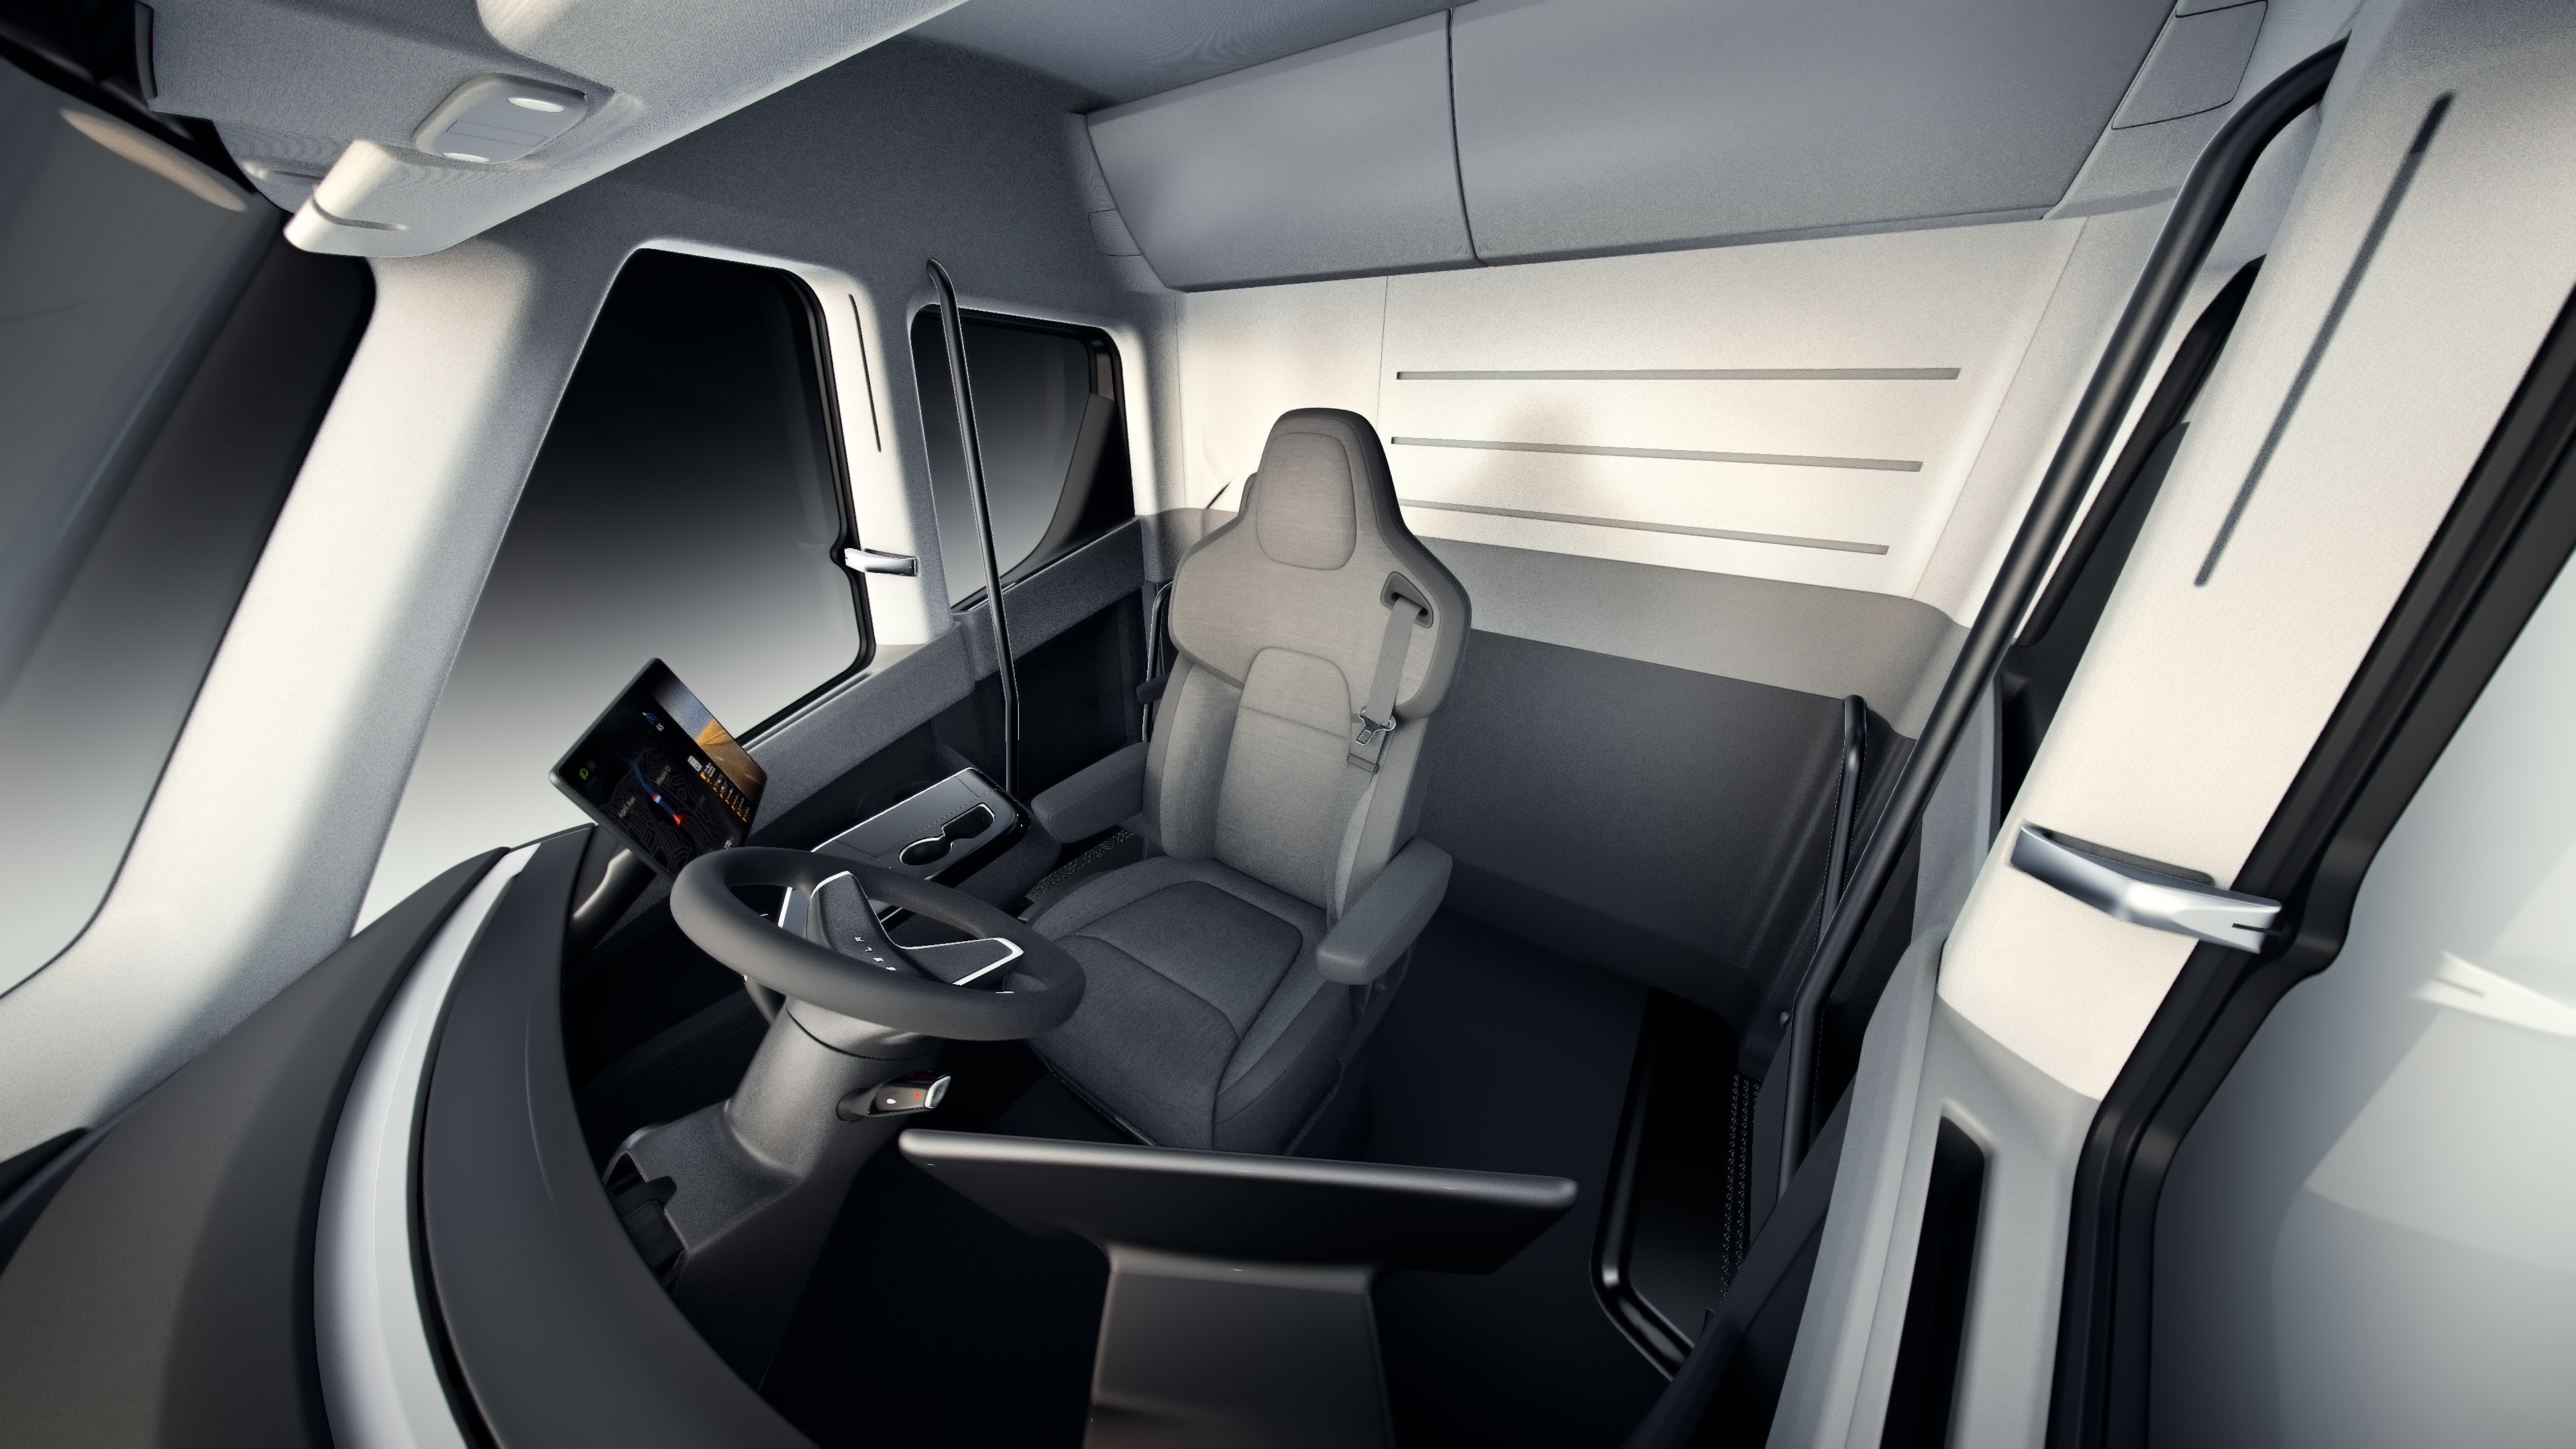 tesla semi comment tesla rel ve les d fis du camion du futur frandroid. Black Bedroom Furniture Sets. Home Design Ideas